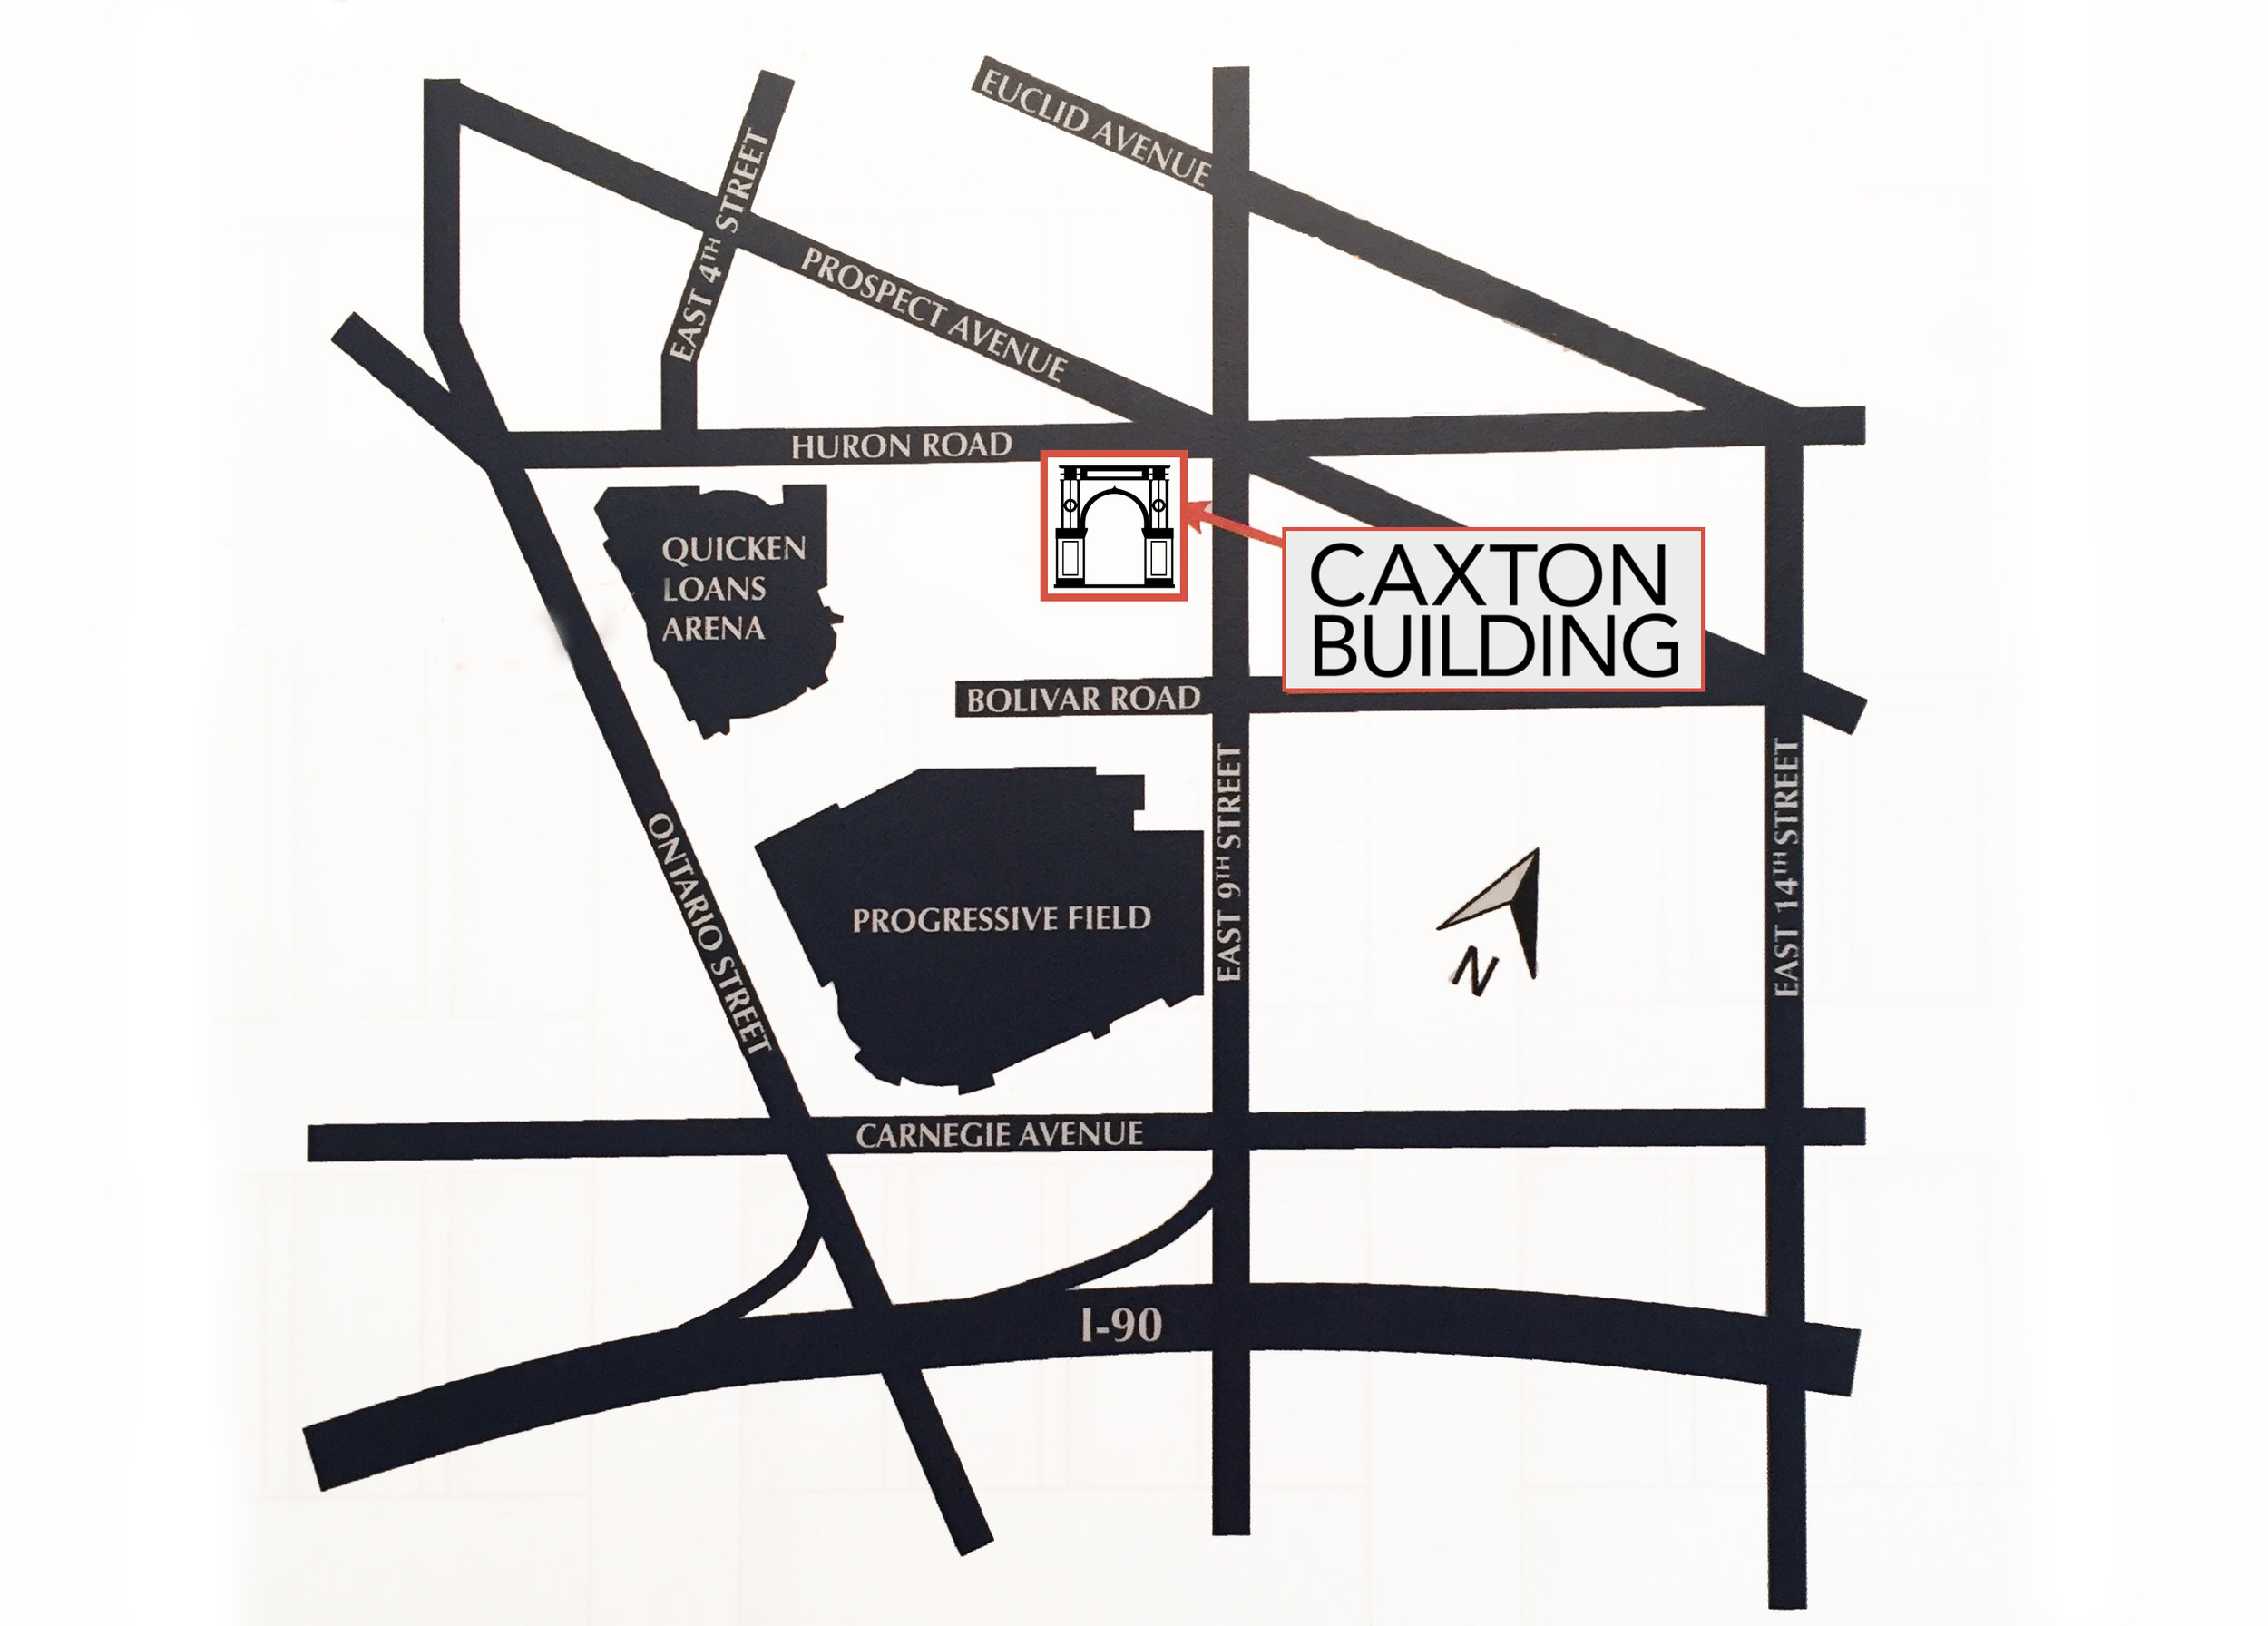 caxton building office location downtown cleveland map